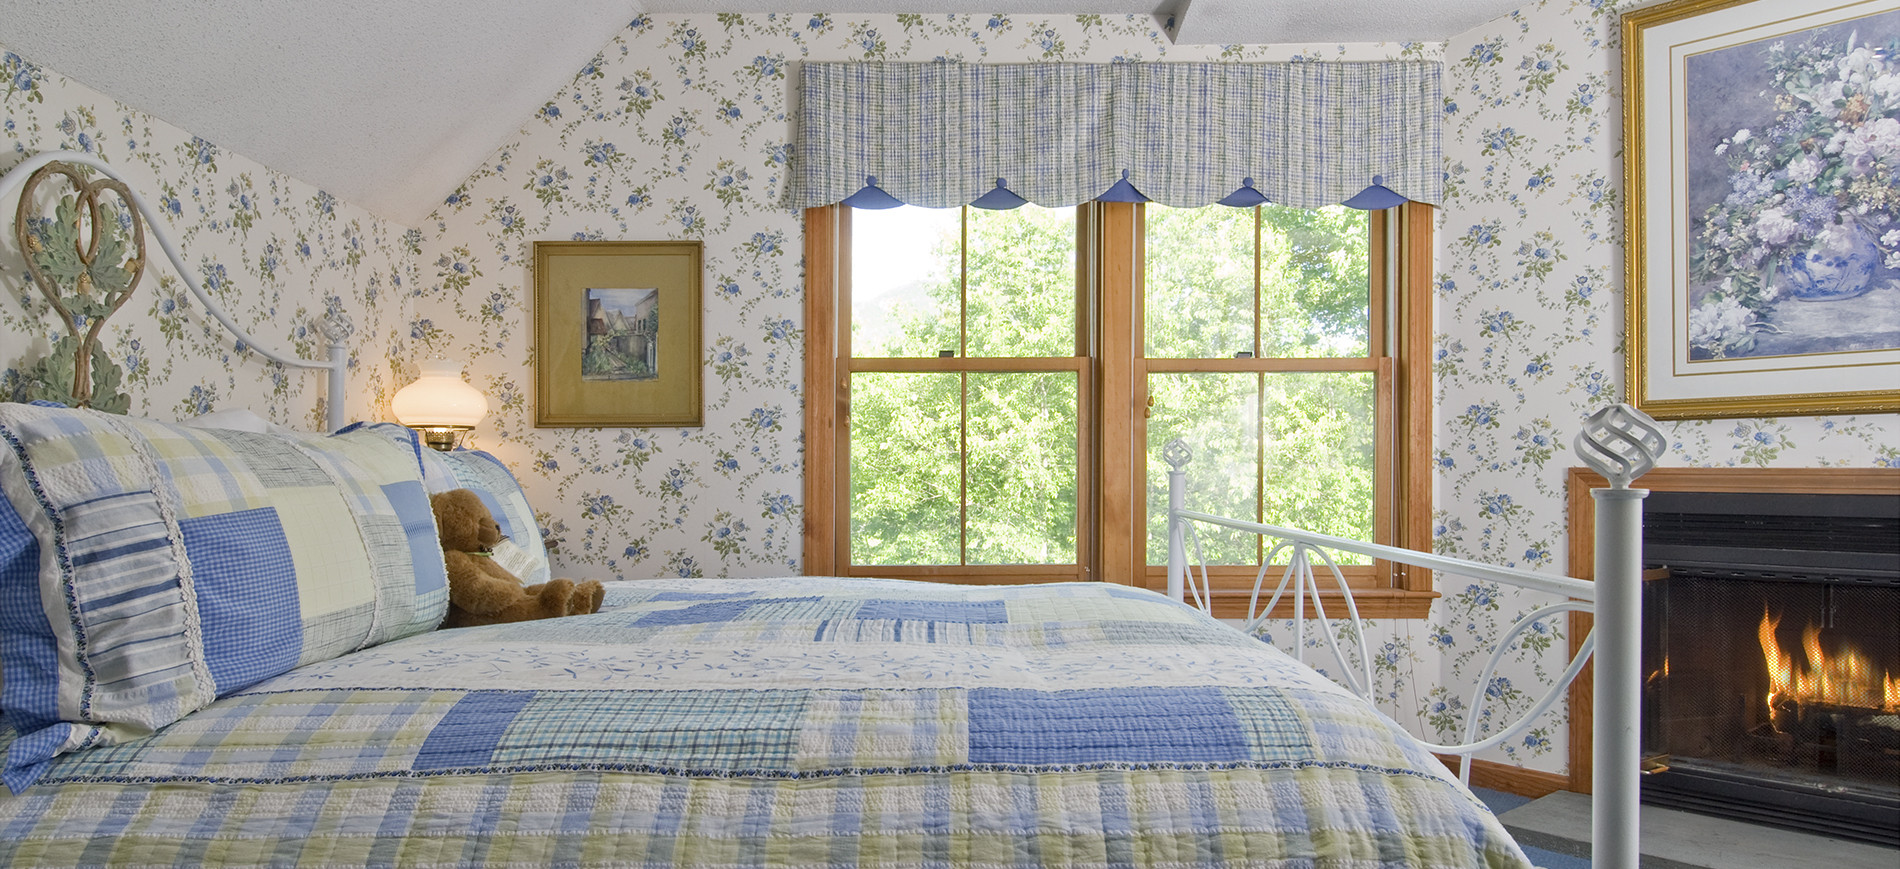 Guest room with king white iron bed & blue plaid bedding, blue & white wallpaper, window with plaid valence, fireplace with picture above